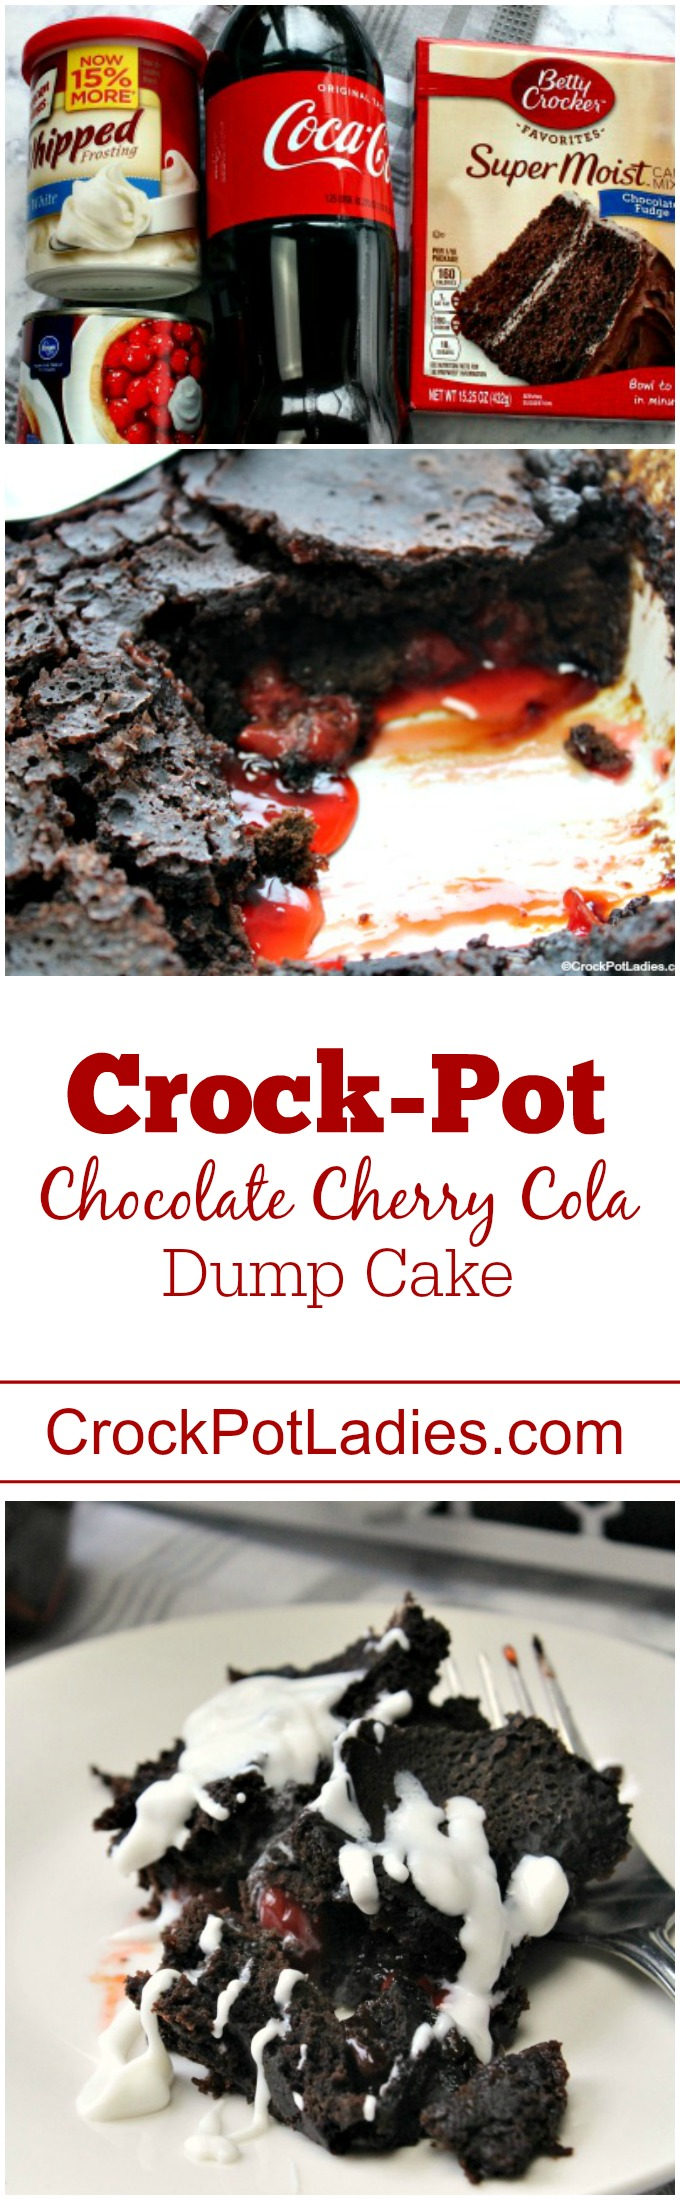 Crock-Pot Chocolate Cherry Cola Dump Cake - With just 4 ingredients this easy to make dessert recipe for Crock-Pot Chocolate Cherry Cola Dump Cake could not be simpler to make and the flavor is out of this world! A box of chocolate cake mix, a can of cola, a can of cherry pie filling and cream cheese icing is all you need for this slow cooker dessert! #CrockPot #SlowCooker #Recipe #ValentinesDay #Chocolate #Cherry #Dessert #LowFat #LowSodium #Vegetarian